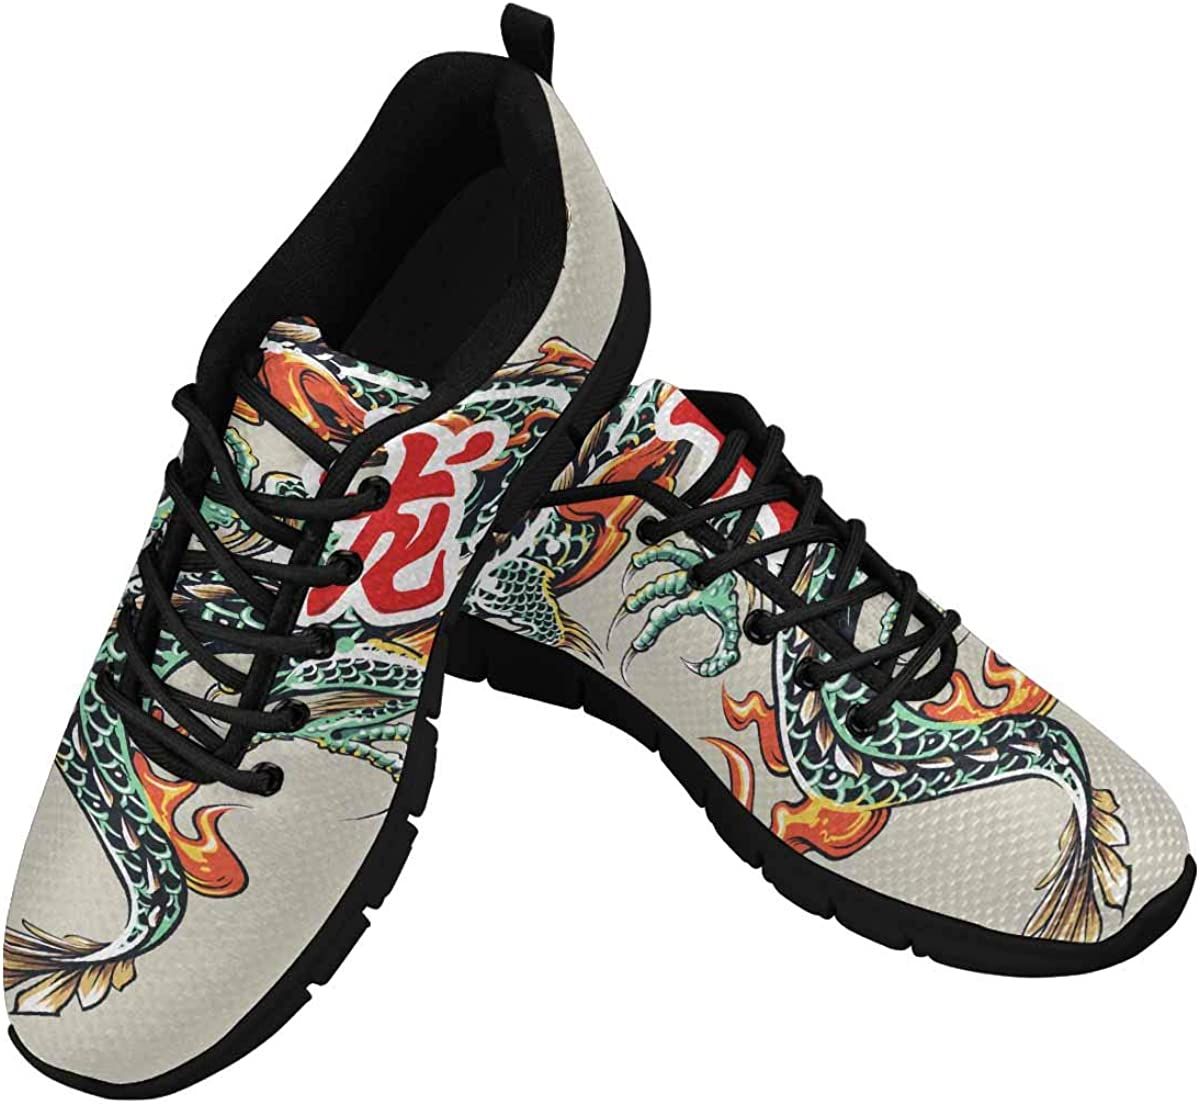 InterestPrint Dragon with Fire and Hieroglyph Women's Athletic Walking Shoes Comfort Mesh Non Slip